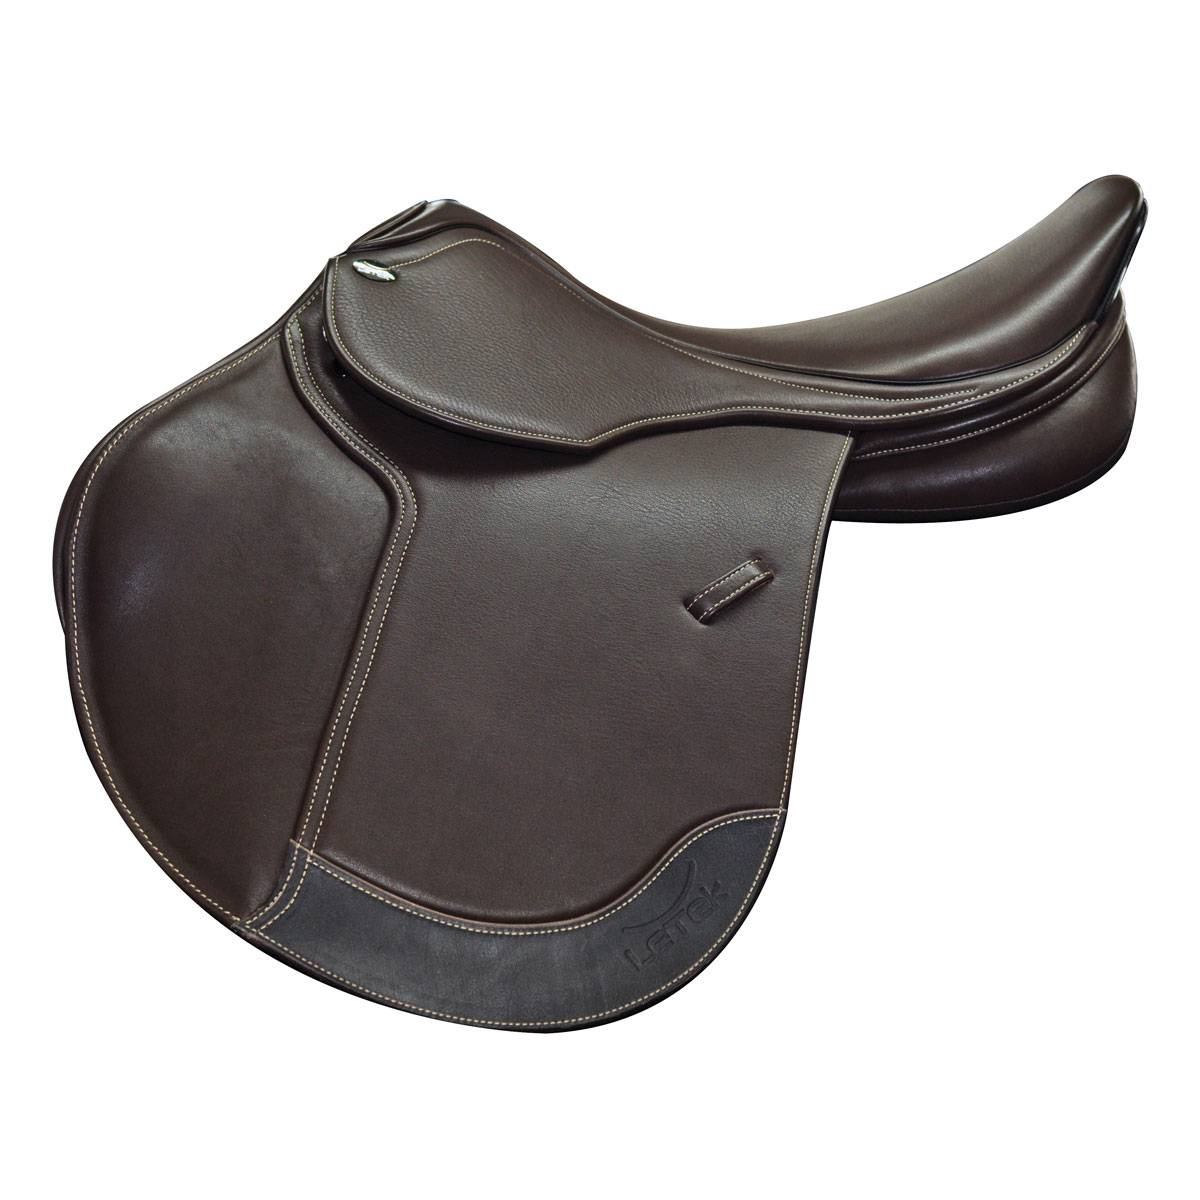 LeTek Close Contact Saddle by Tekna